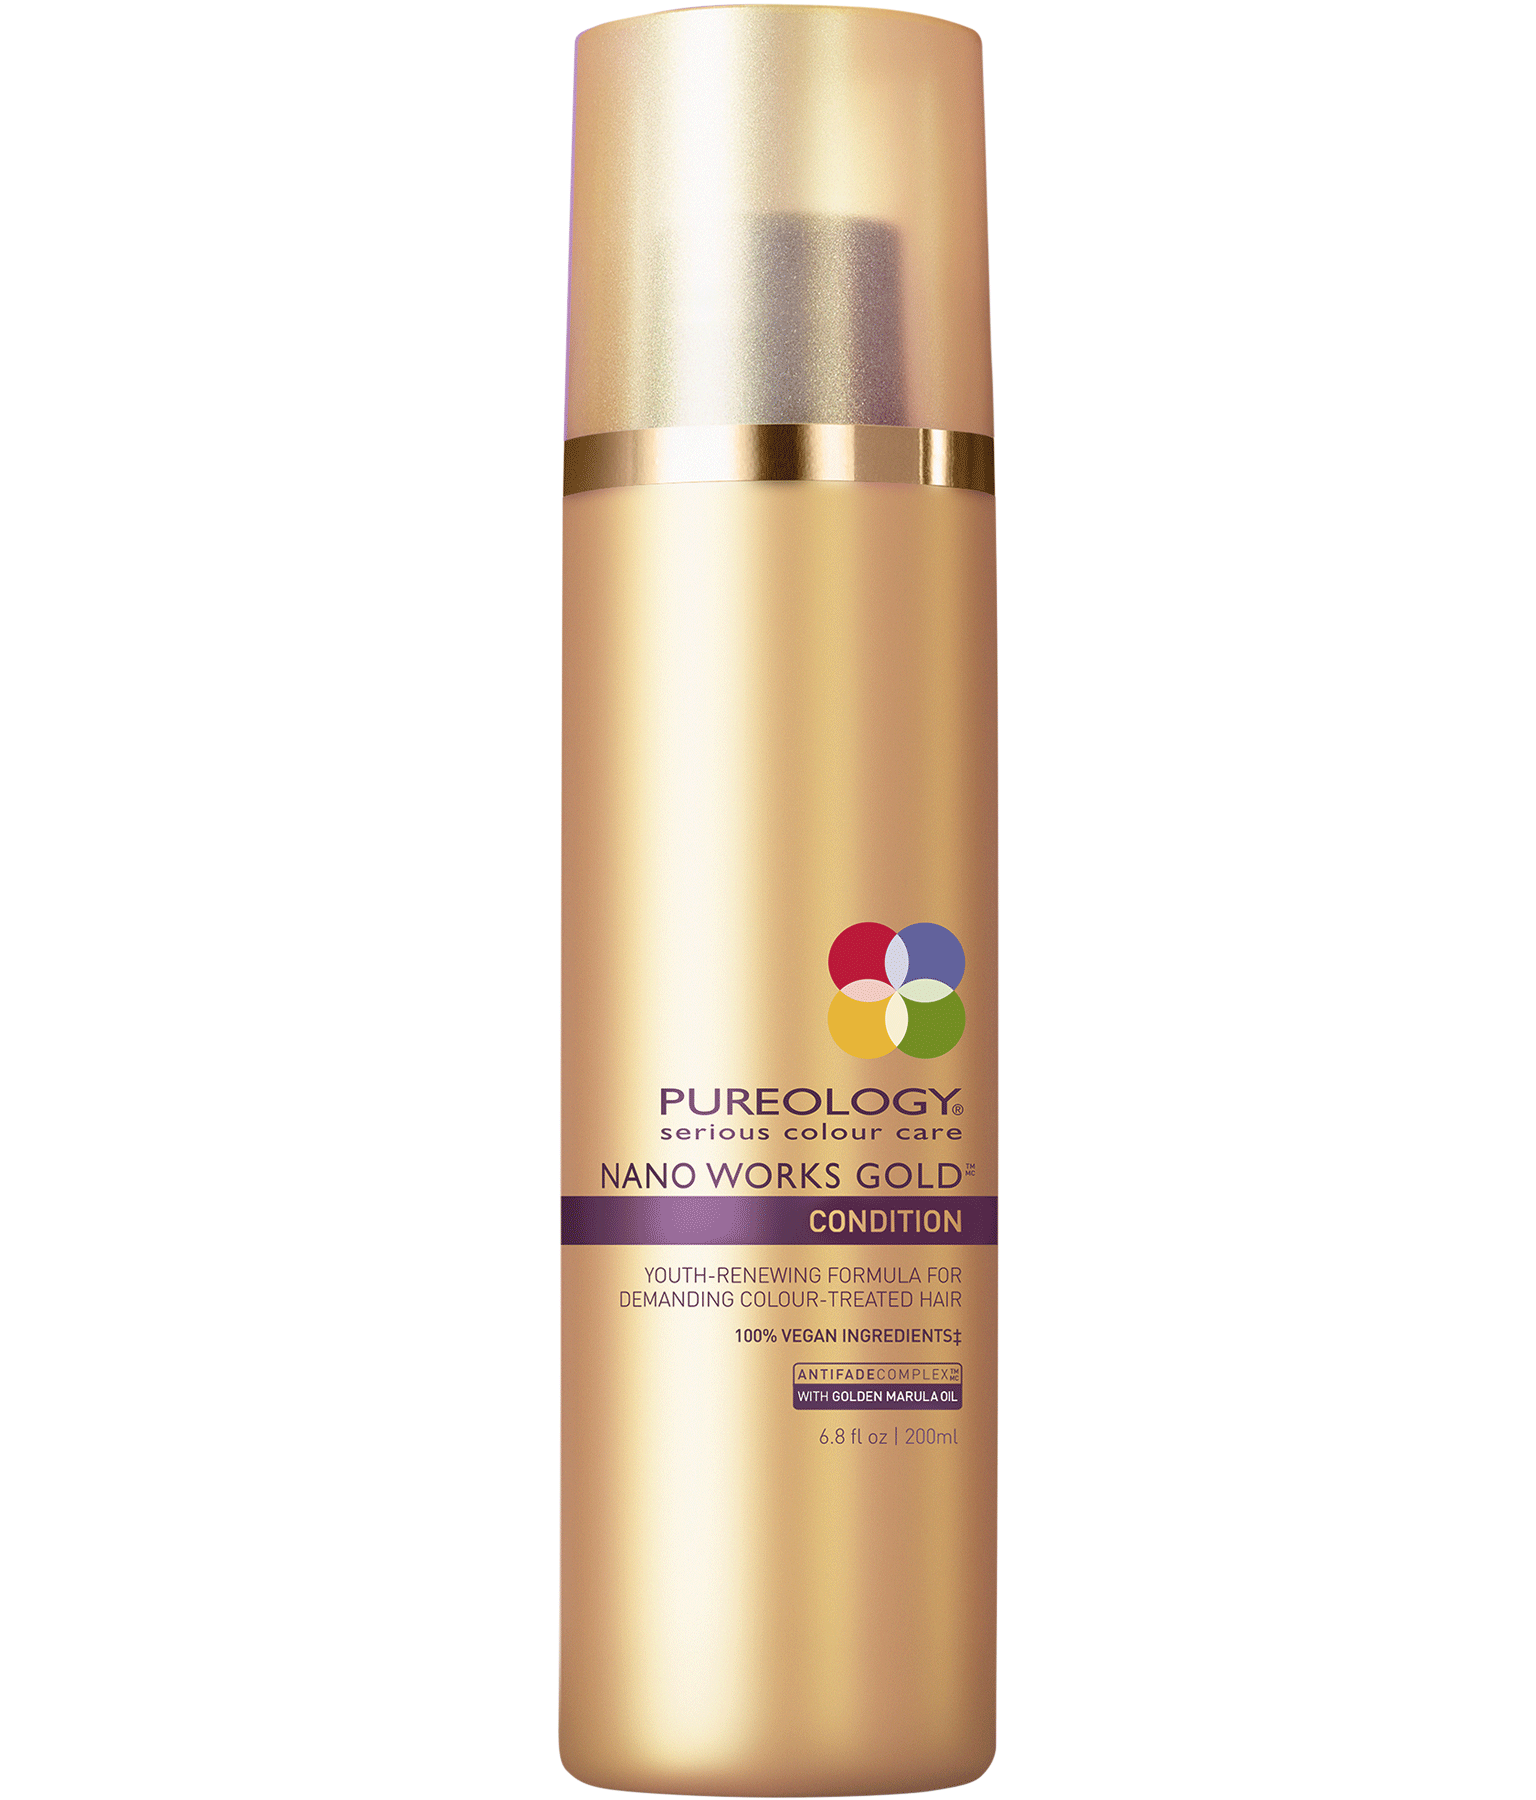 pureology nano works gold conditioner planet sol salon. Black Bedroom Furniture Sets. Home Design Ideas